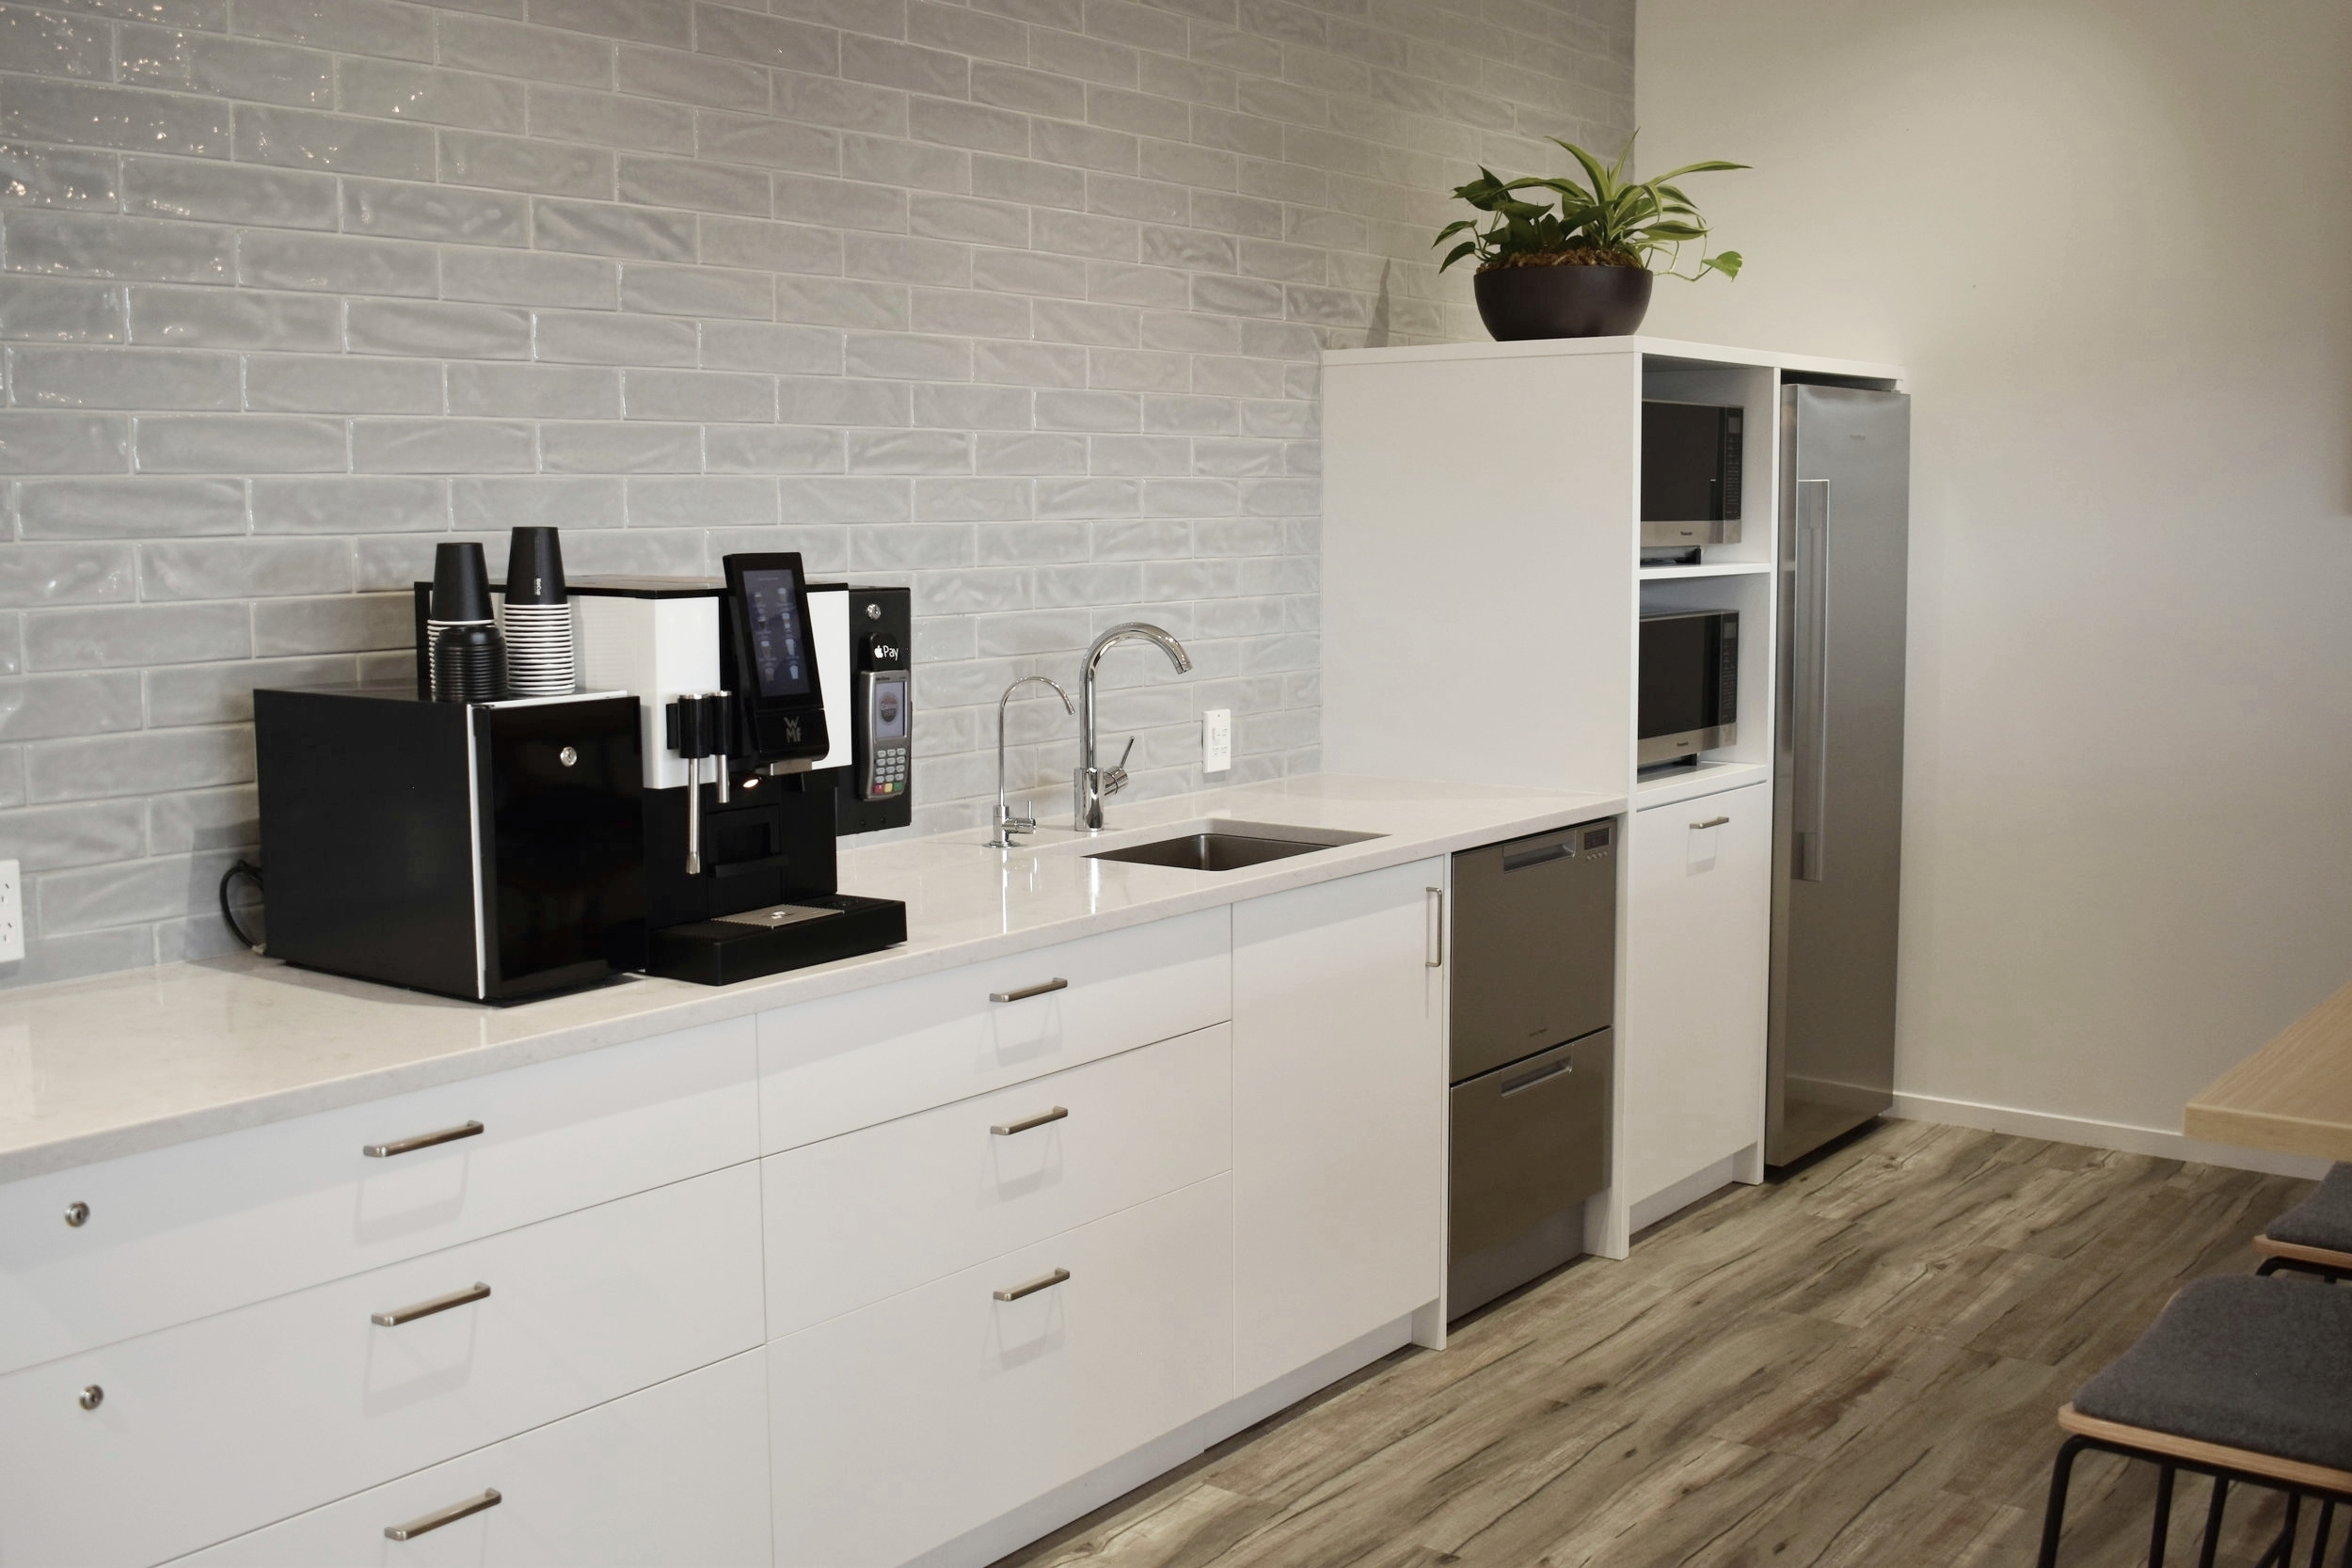 Commercial Interior Design for Kitchen Renovations